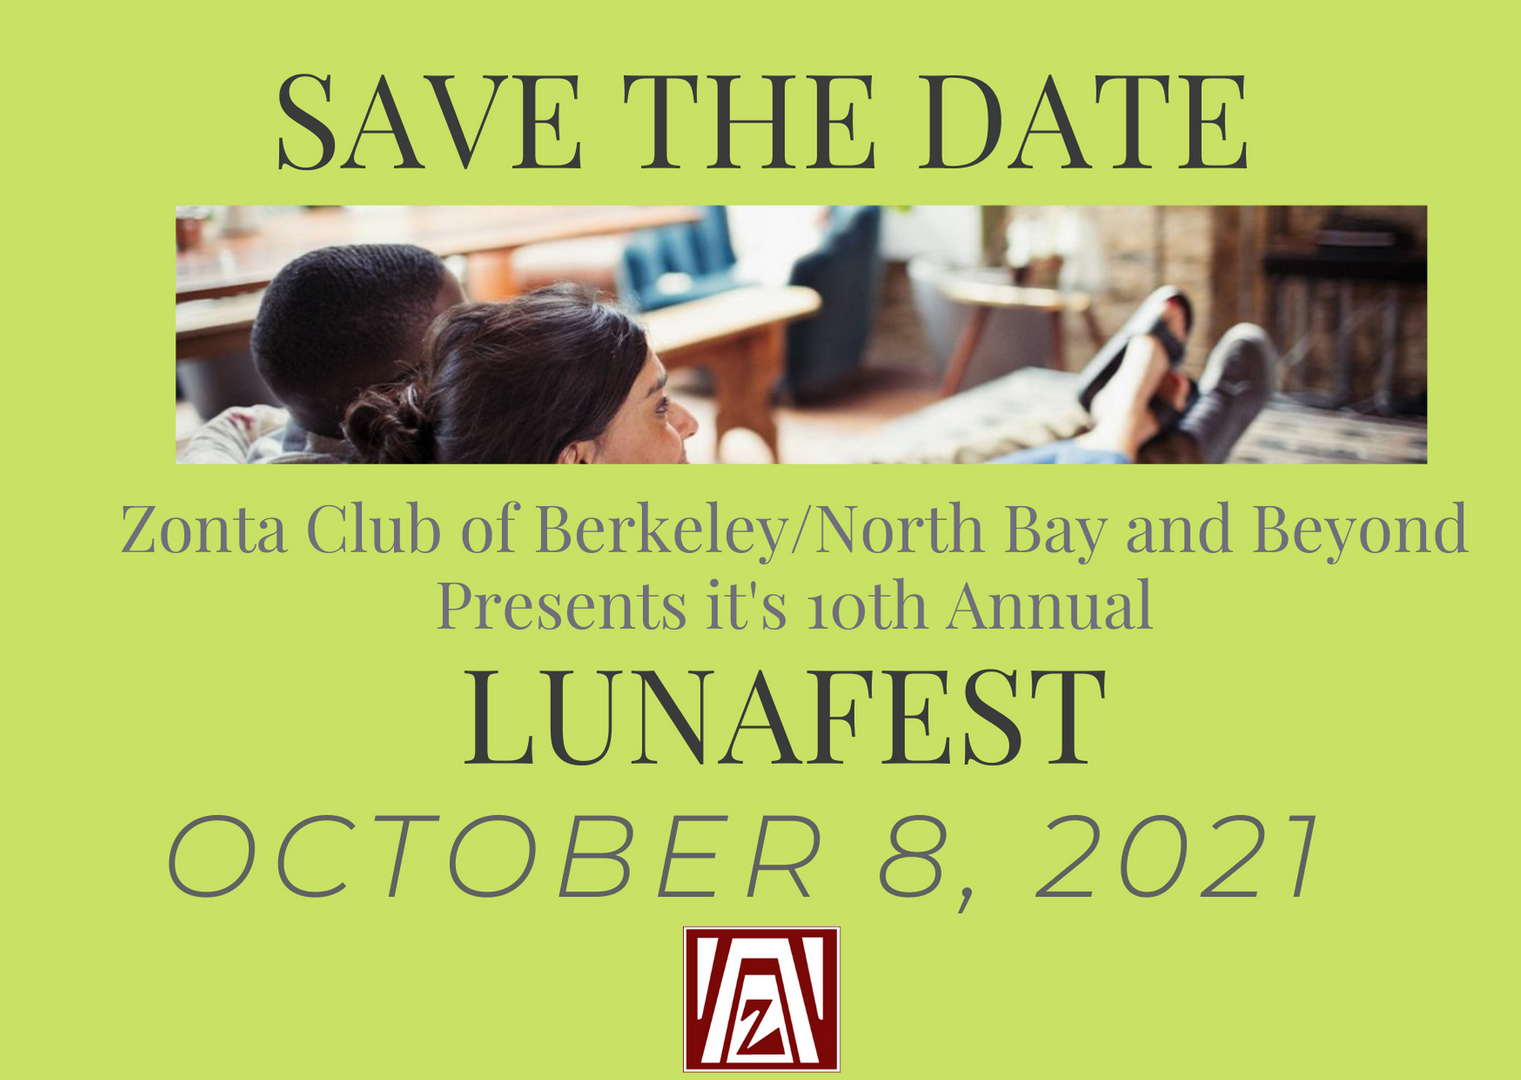 Save the Date LUNAFEST